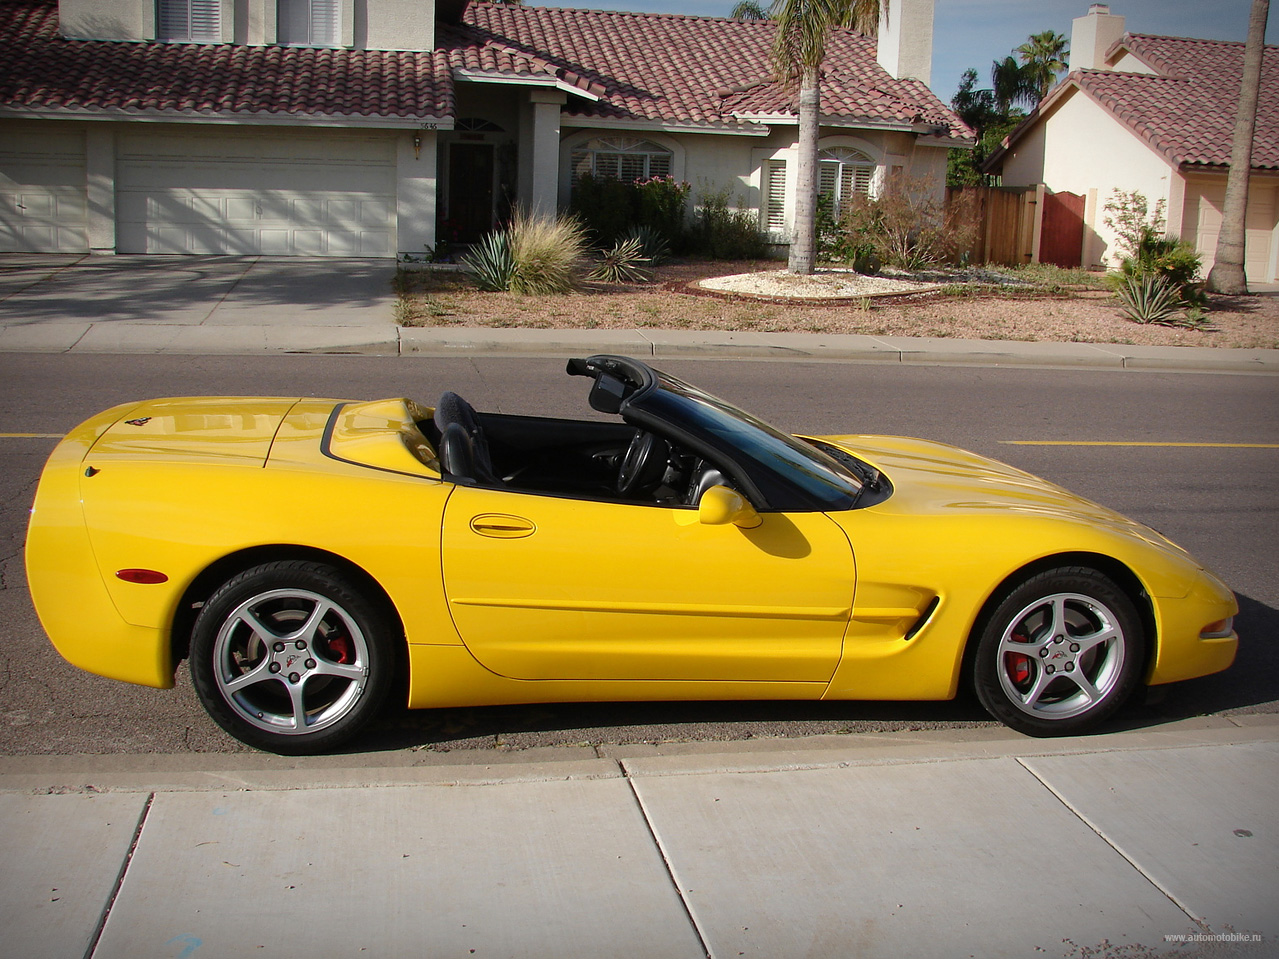 Chevrolet Corvette 5.7 1998 photo - 3